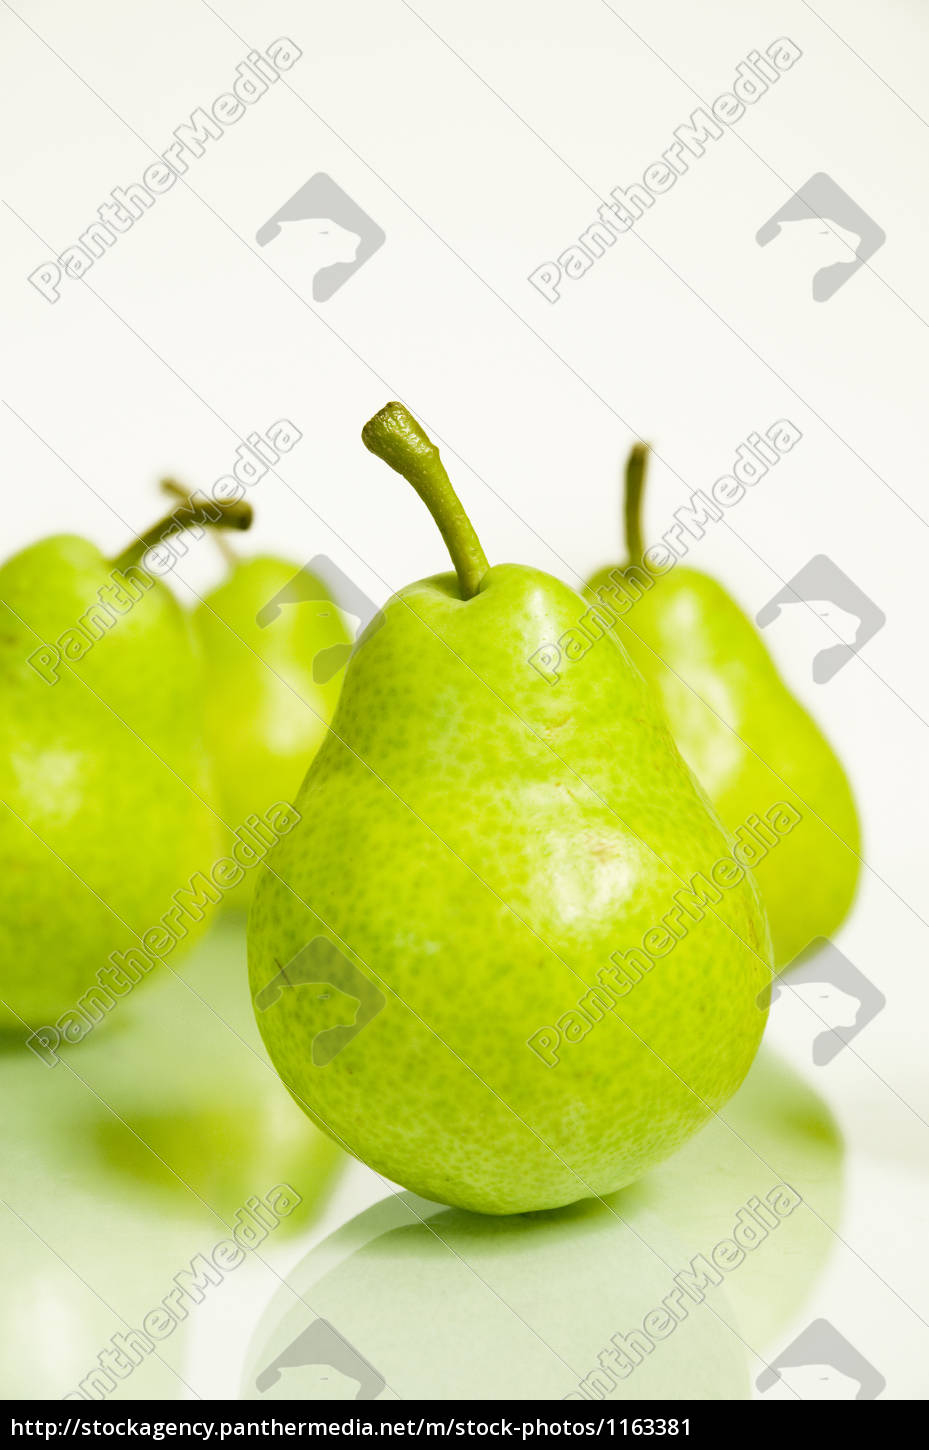 willams, christ, pears - 1163381